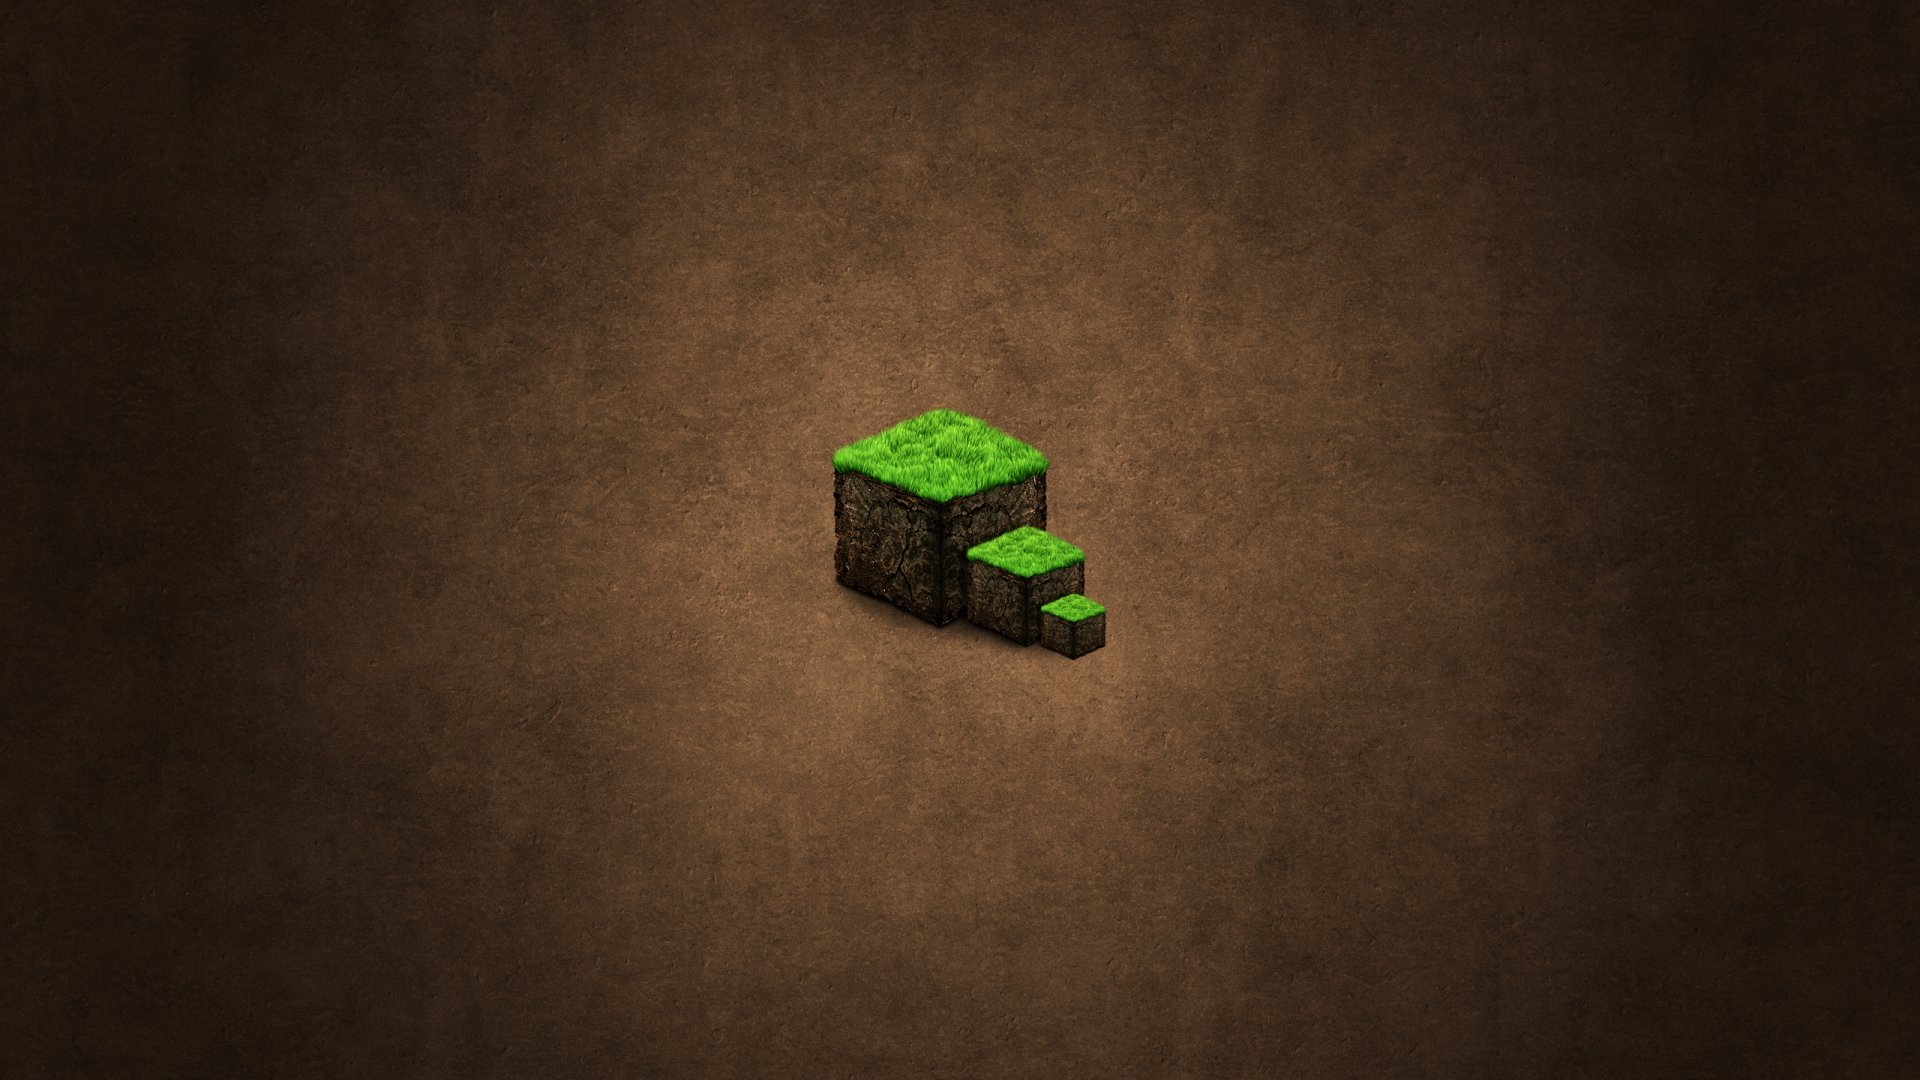 uploads201109awesome minecraft wallpapers in HD 1dutcom 6jpg 1920x1080